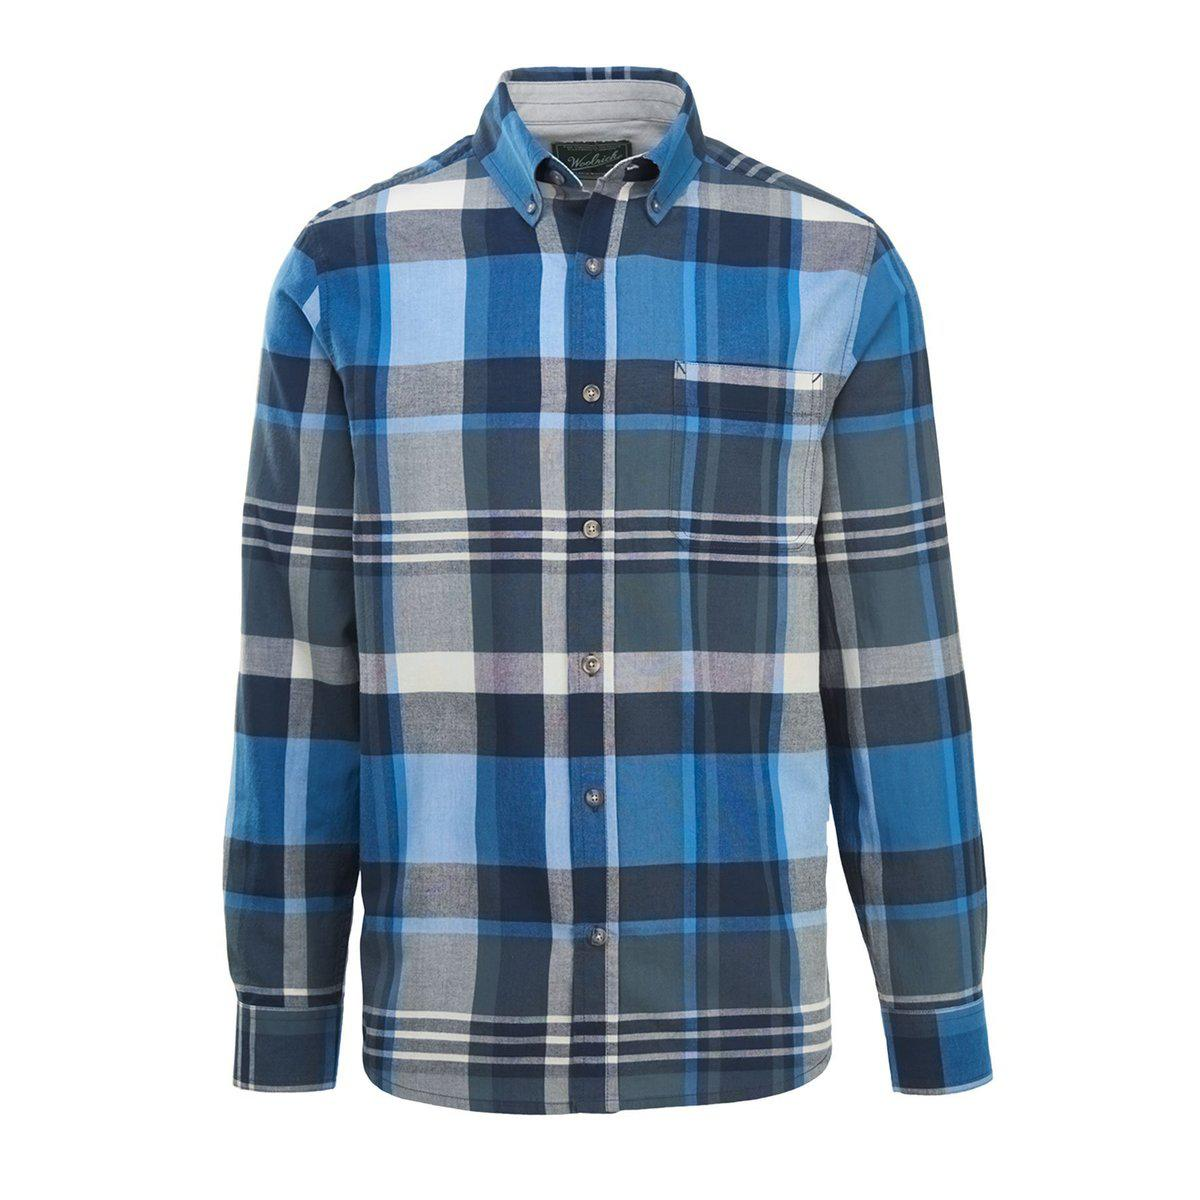 f074c816e4dc79 Lyst - Woolrich Timberline Long Sleeve Madras Plaid Shirt in Blue ...